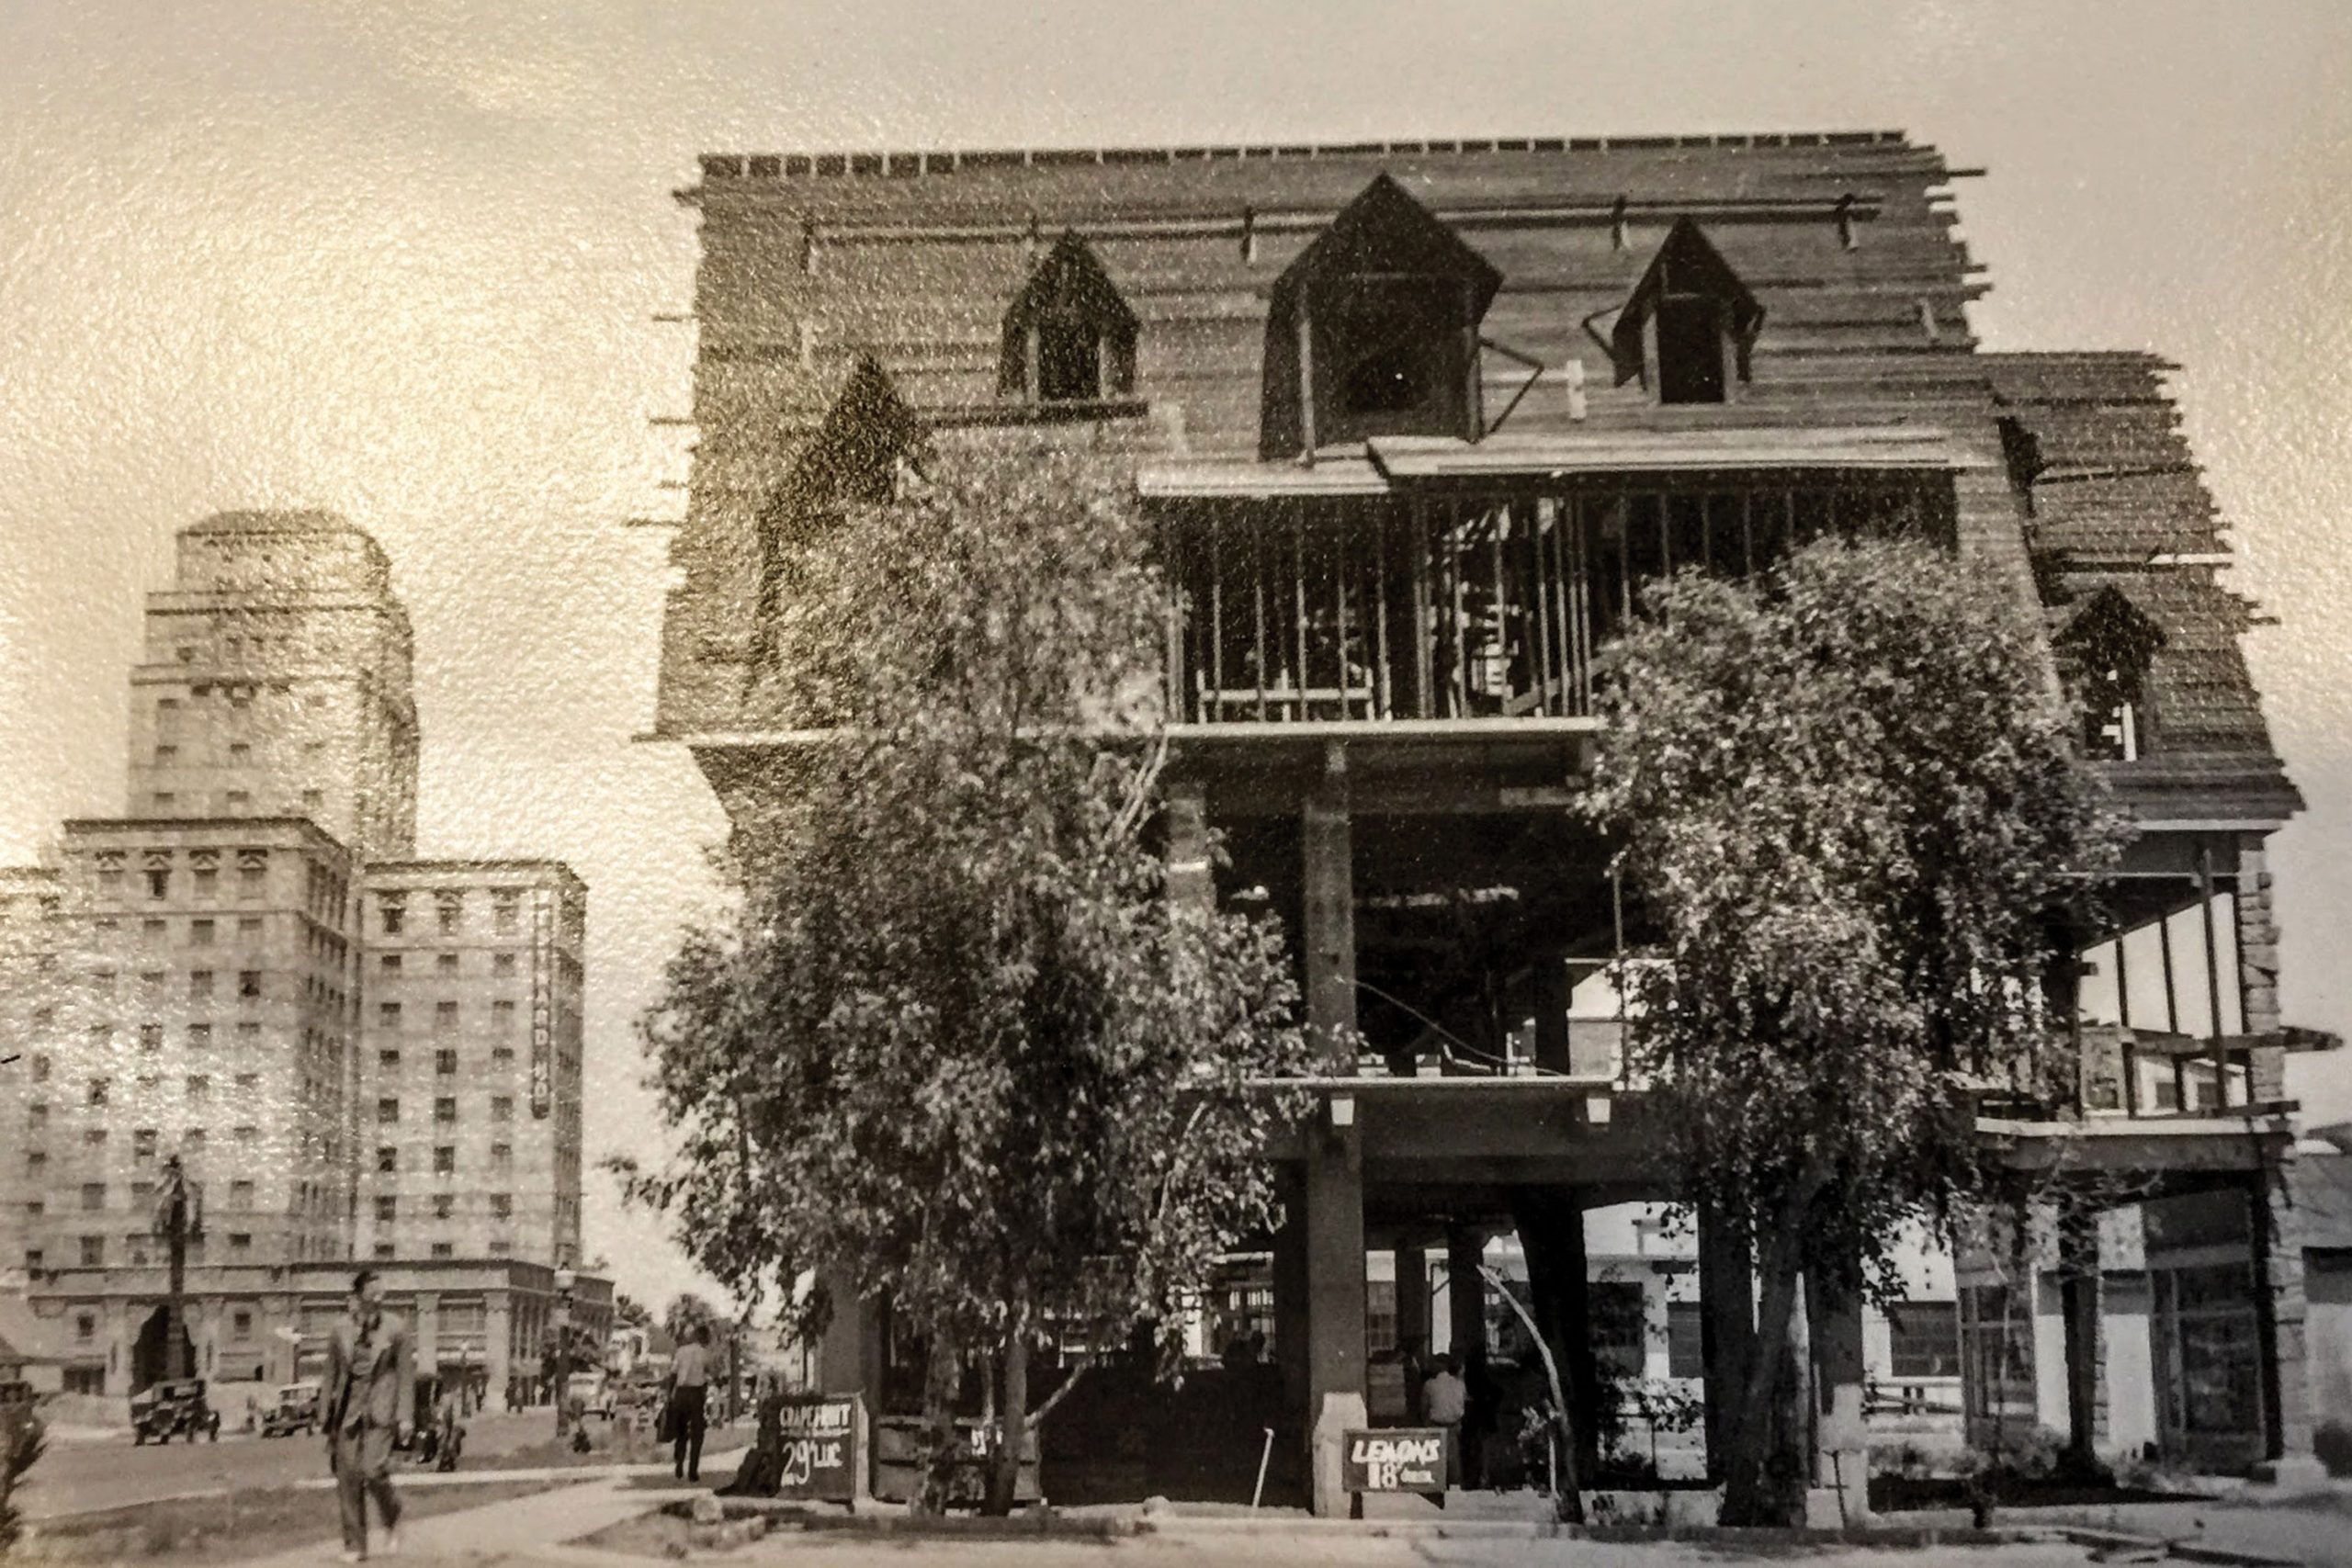 Hattie Mosher's Tea House at Central Avenue and Taylor Street, which was razed in 1955; Photo courtesy Paul Scharbach